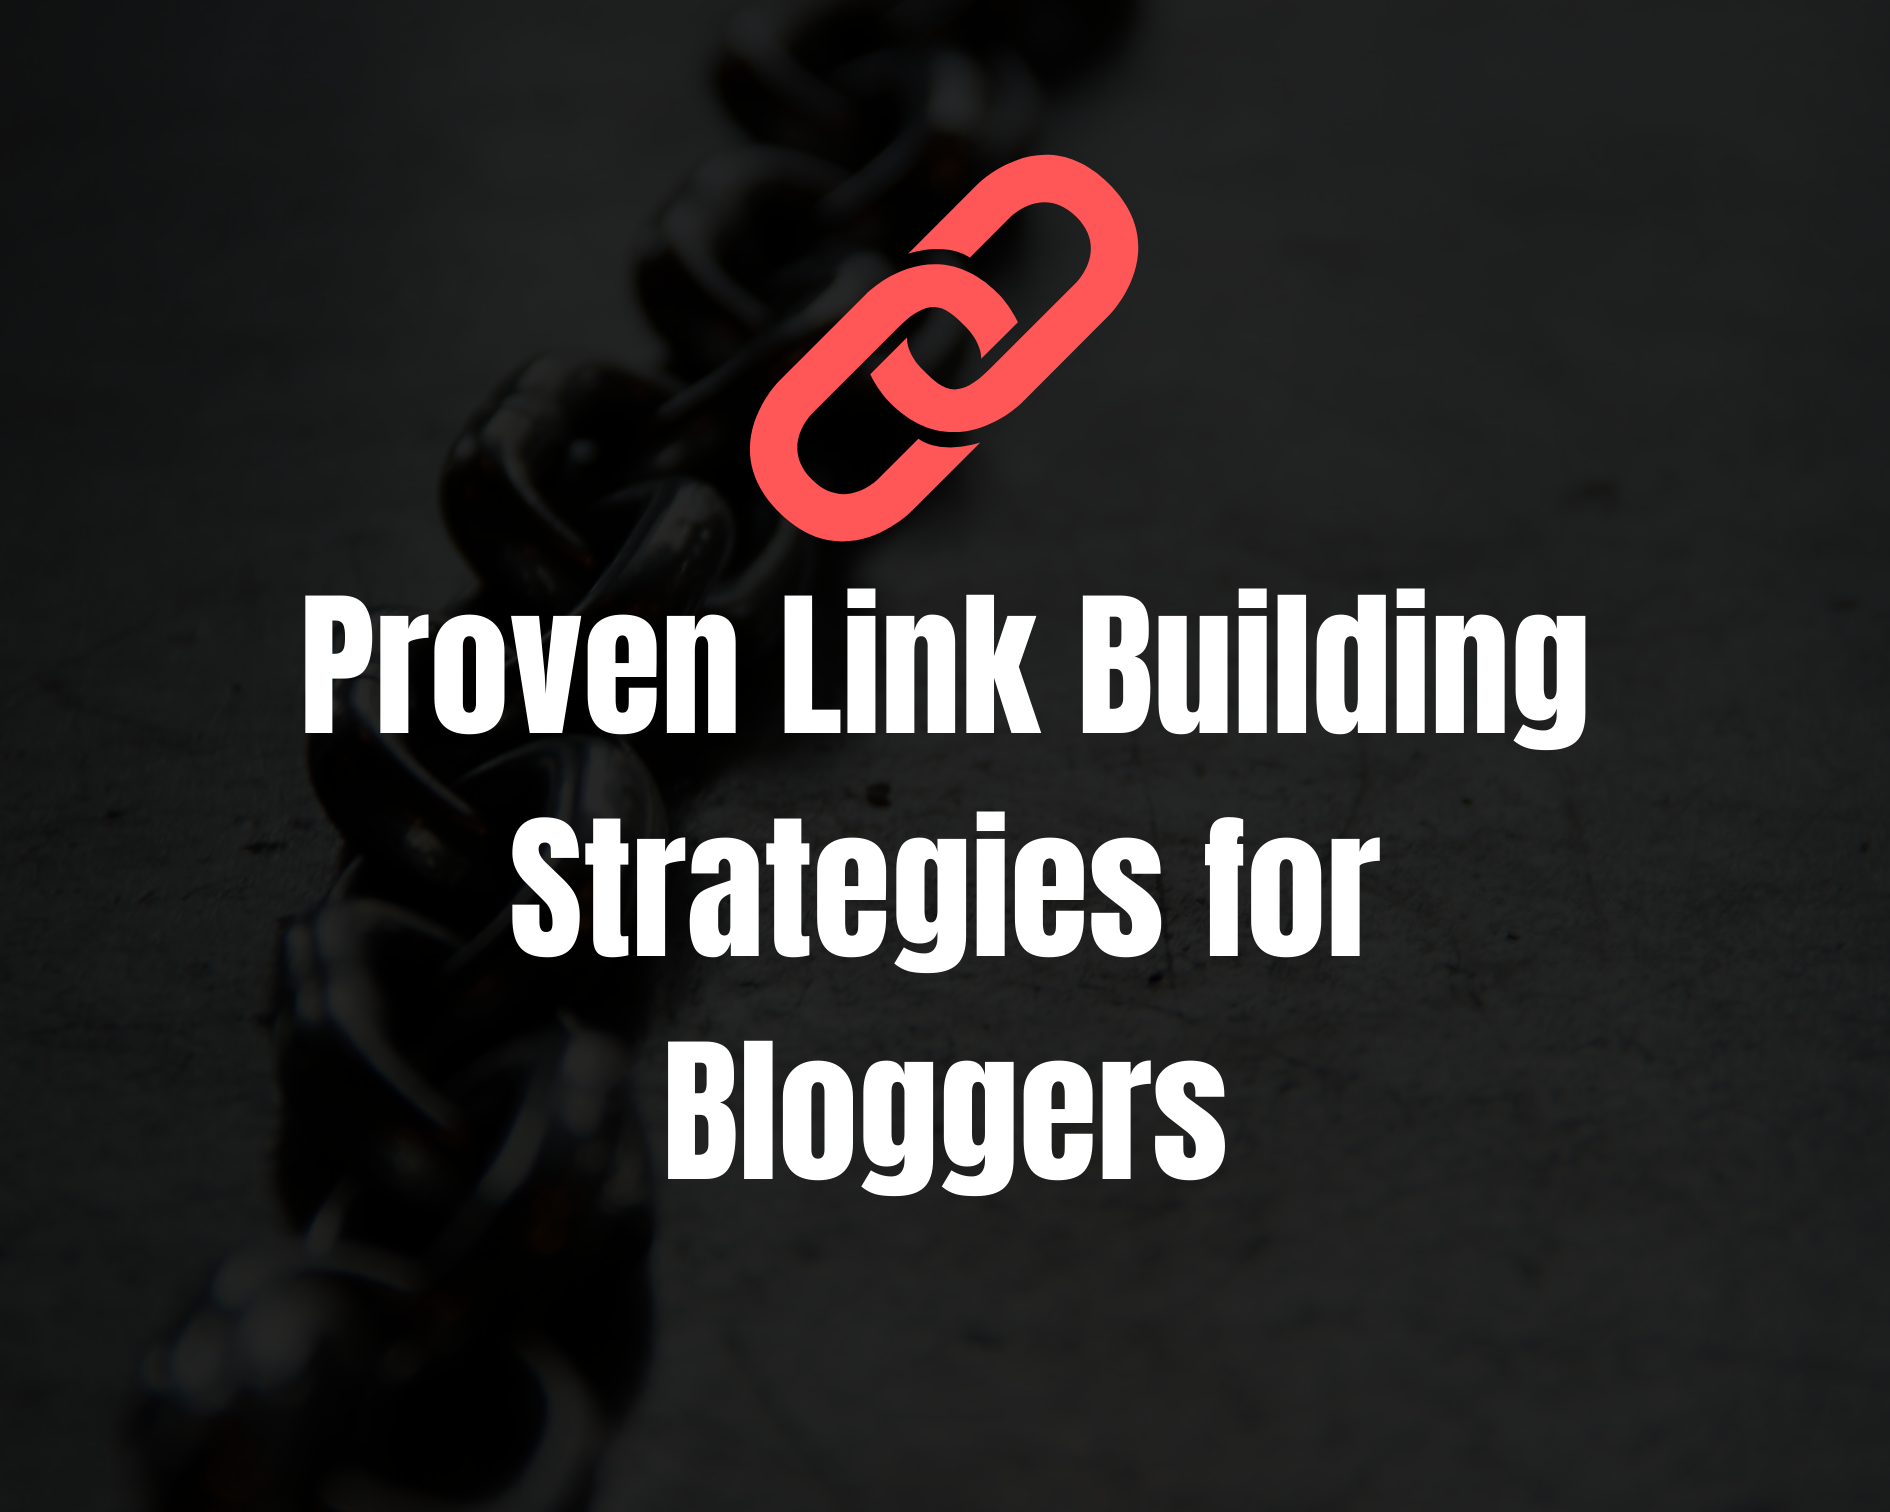 Top 7 Proven Link Building Strategies for Bloggers in 2020